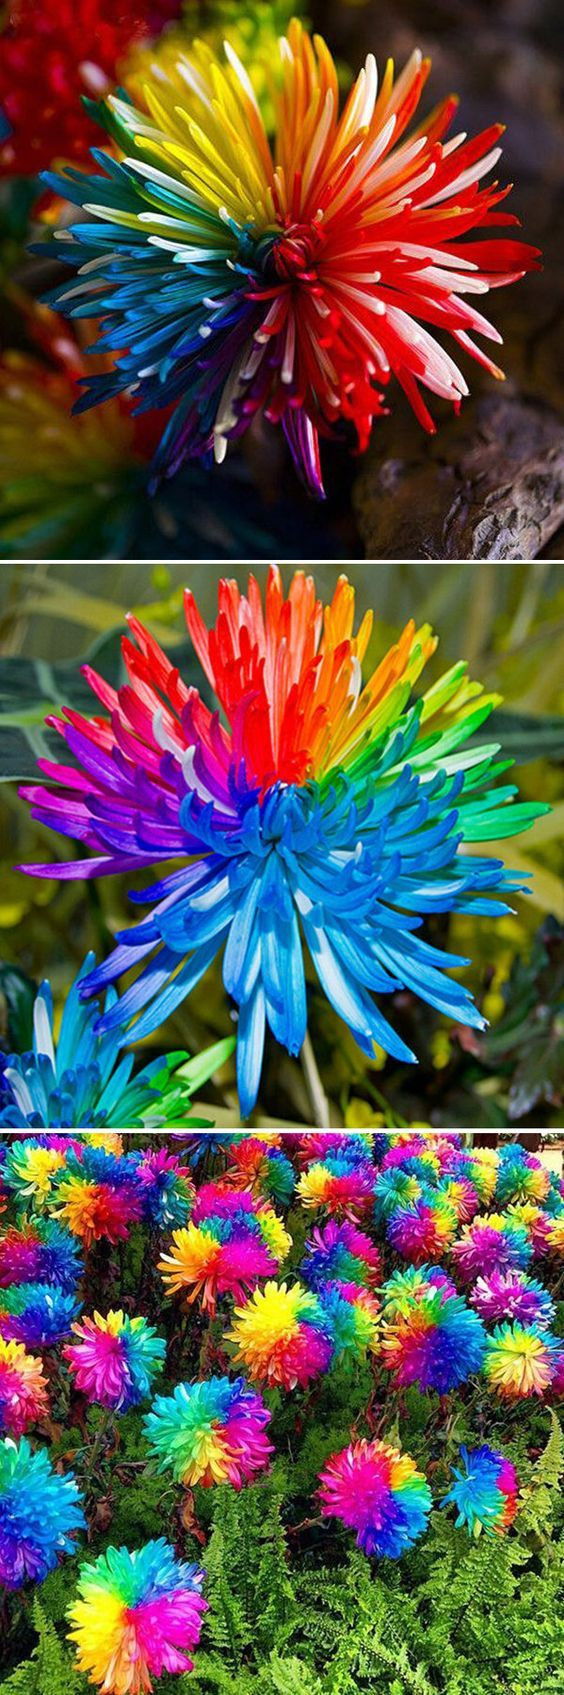 This would look so cool in a colorful fairy garden! They are rare seeds, but you could even DIY your own with some kind of paint and other flowers!